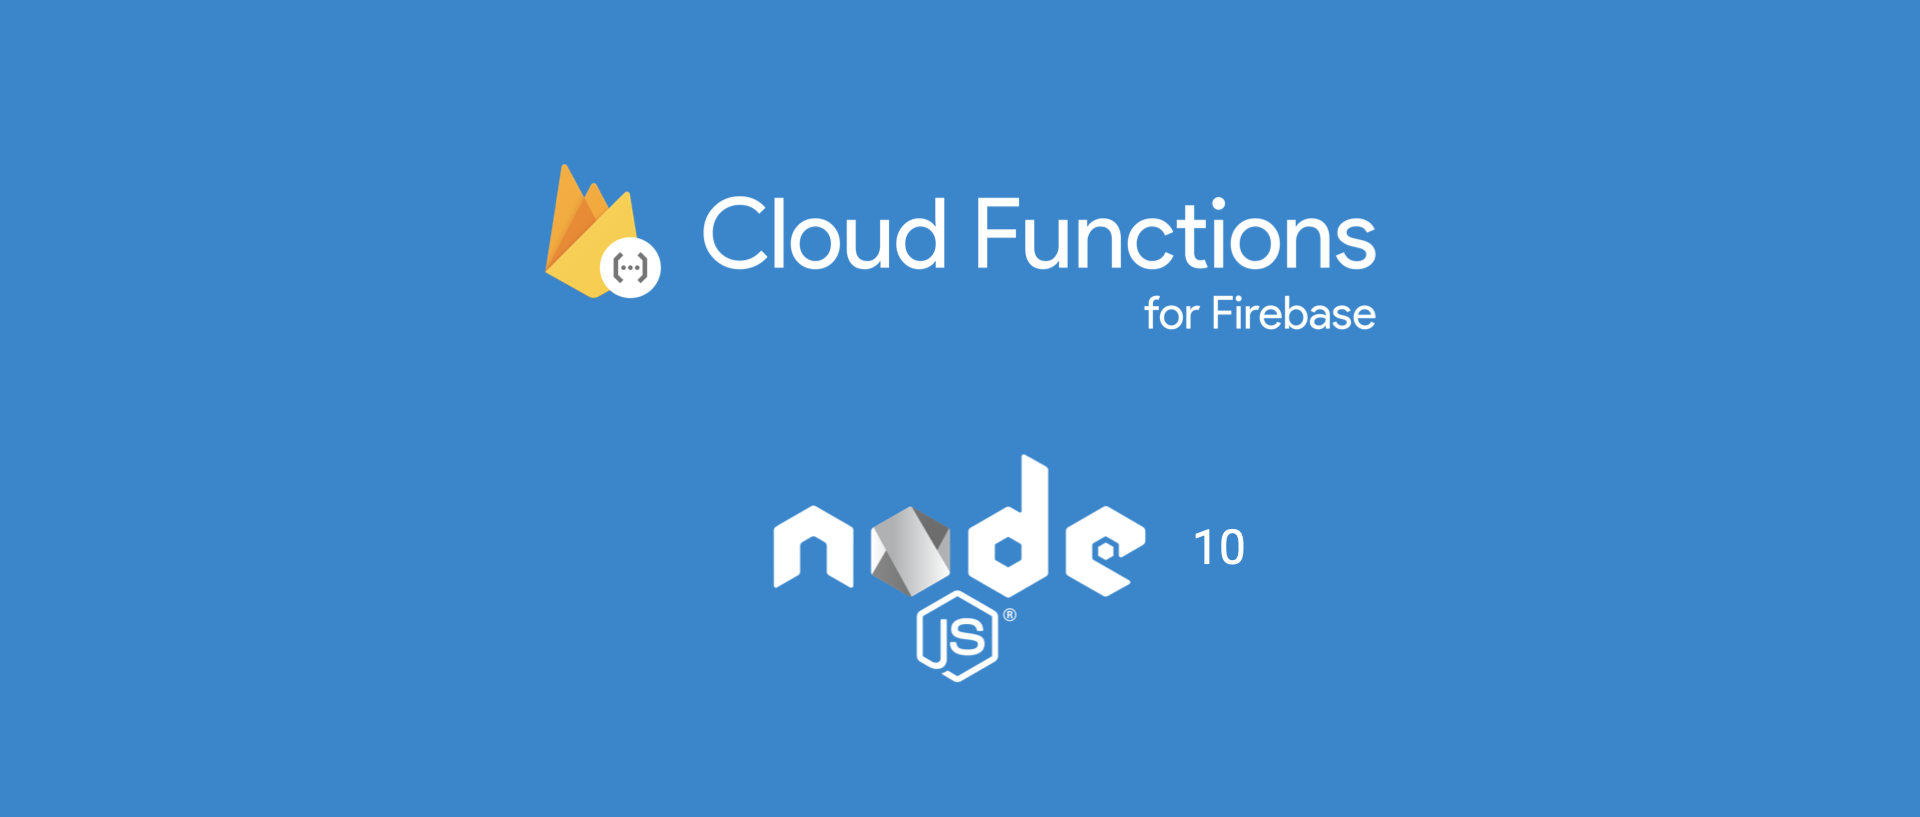 Cloud Functions for Firebase and Node.js logos